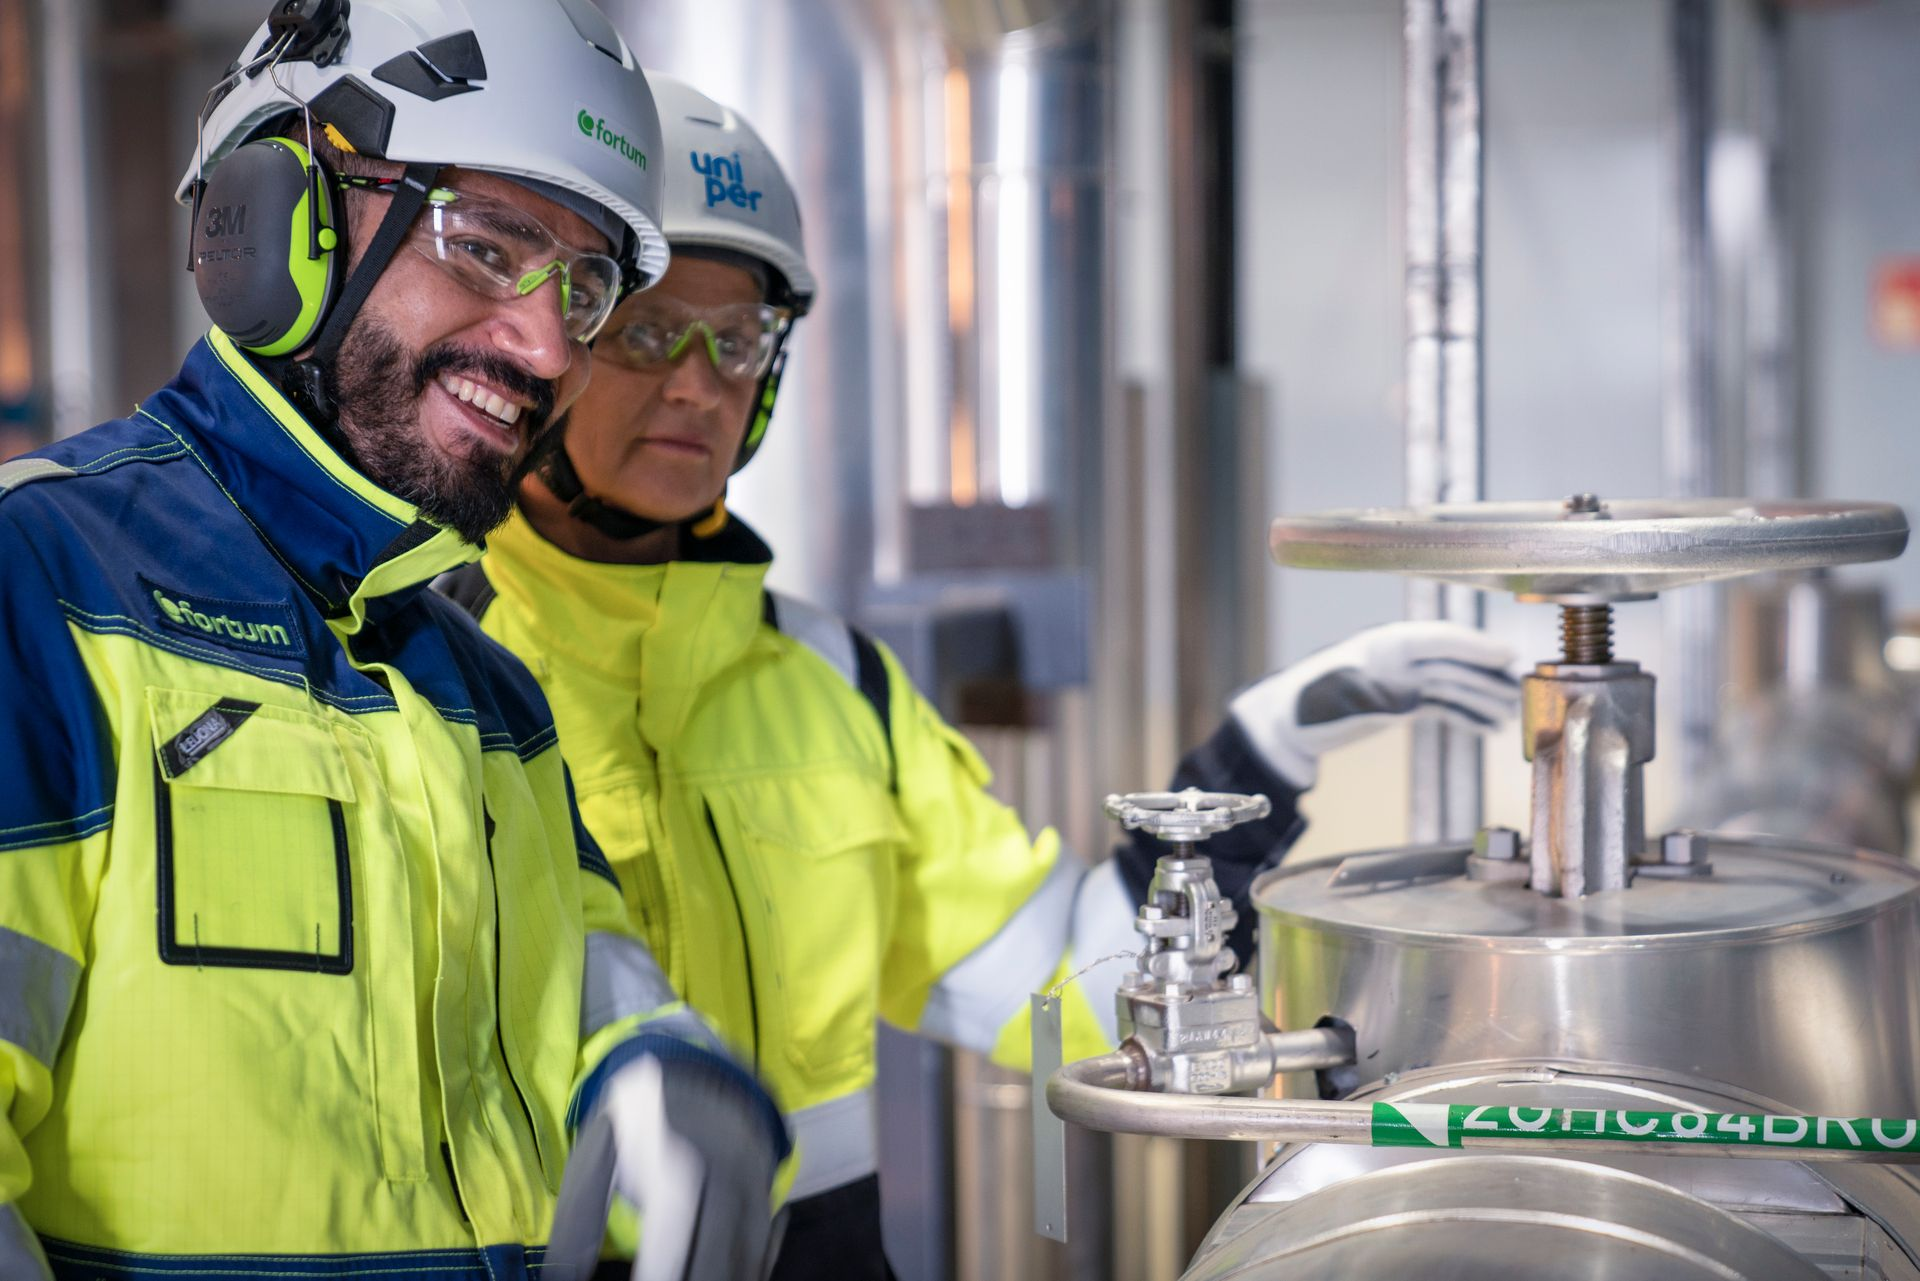 Uniper Engineering and Fortum eNext: Powerful engineering solutions by combining forces